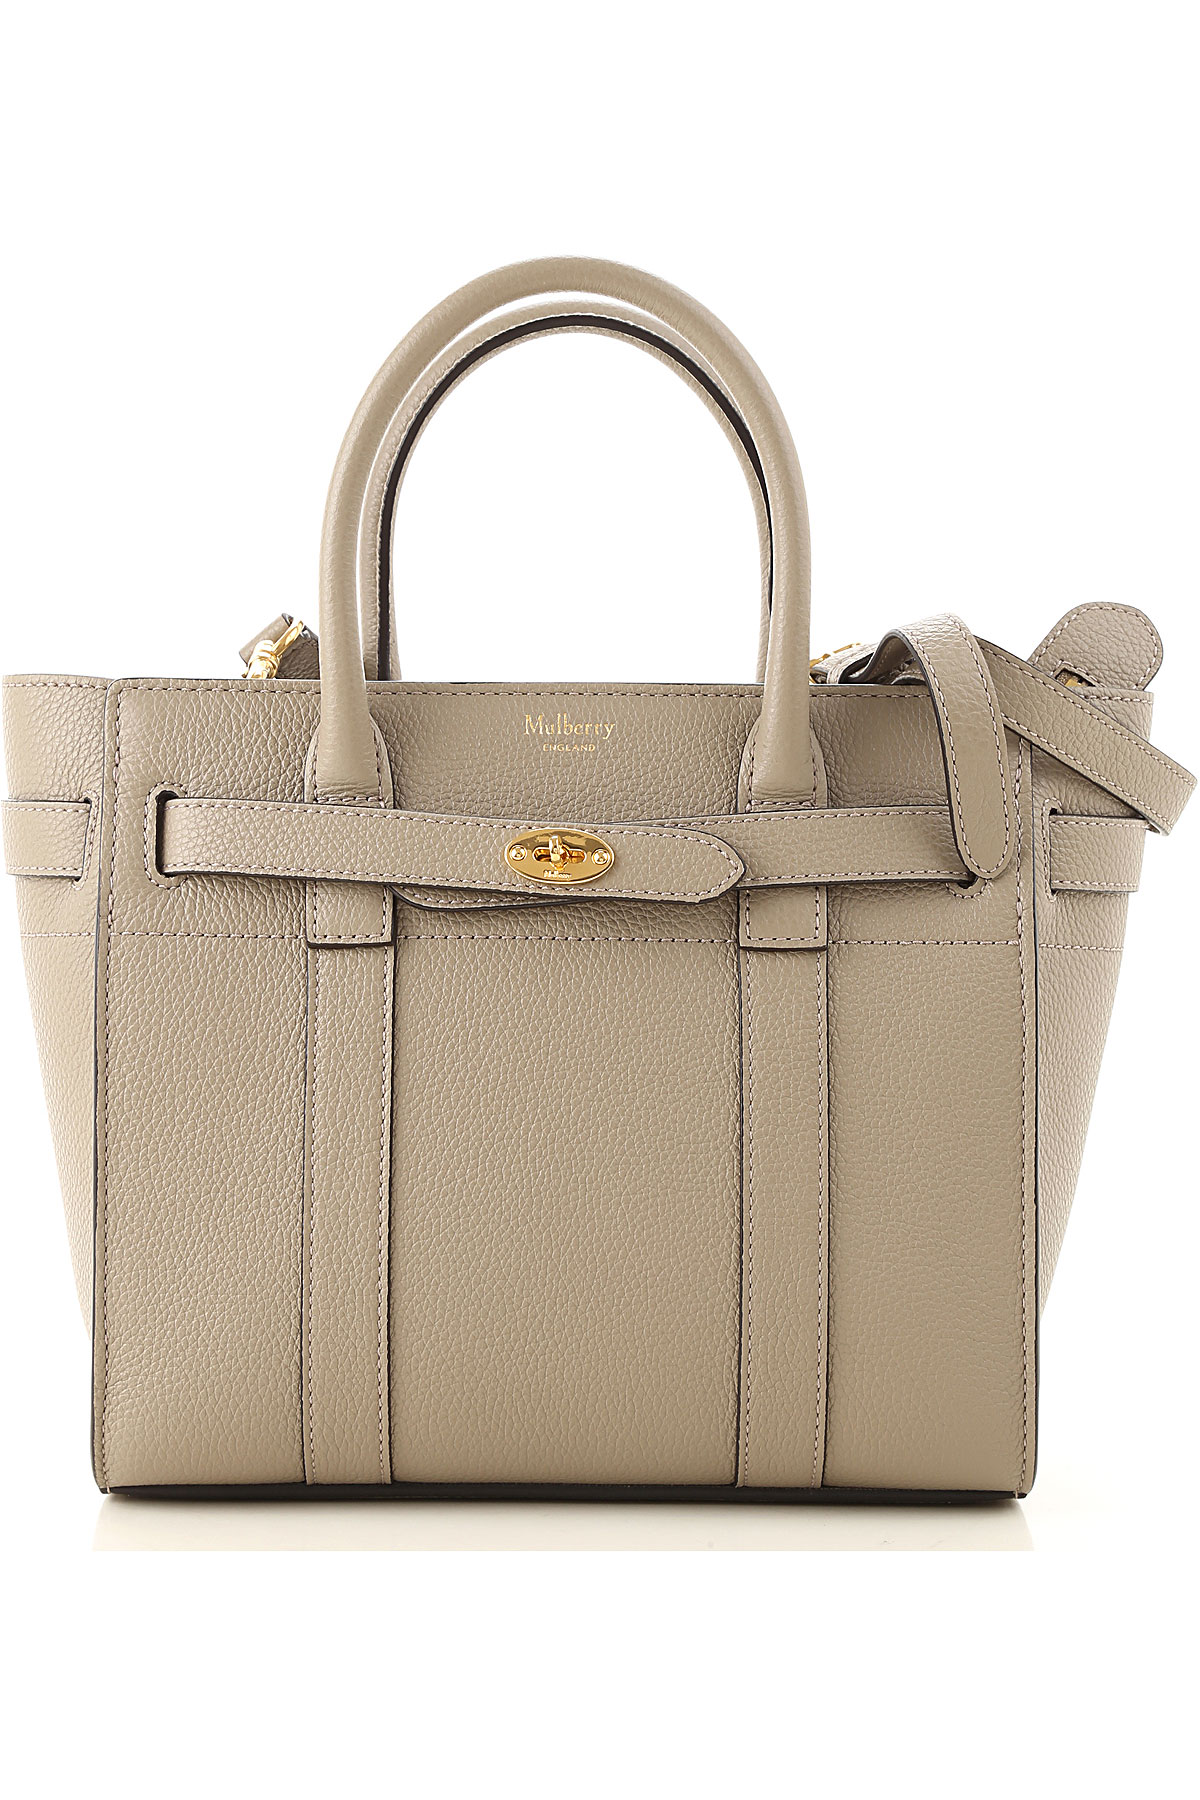 Mulberry Top Handle Handbag On Sale, Solid Grey, Leather, 2019